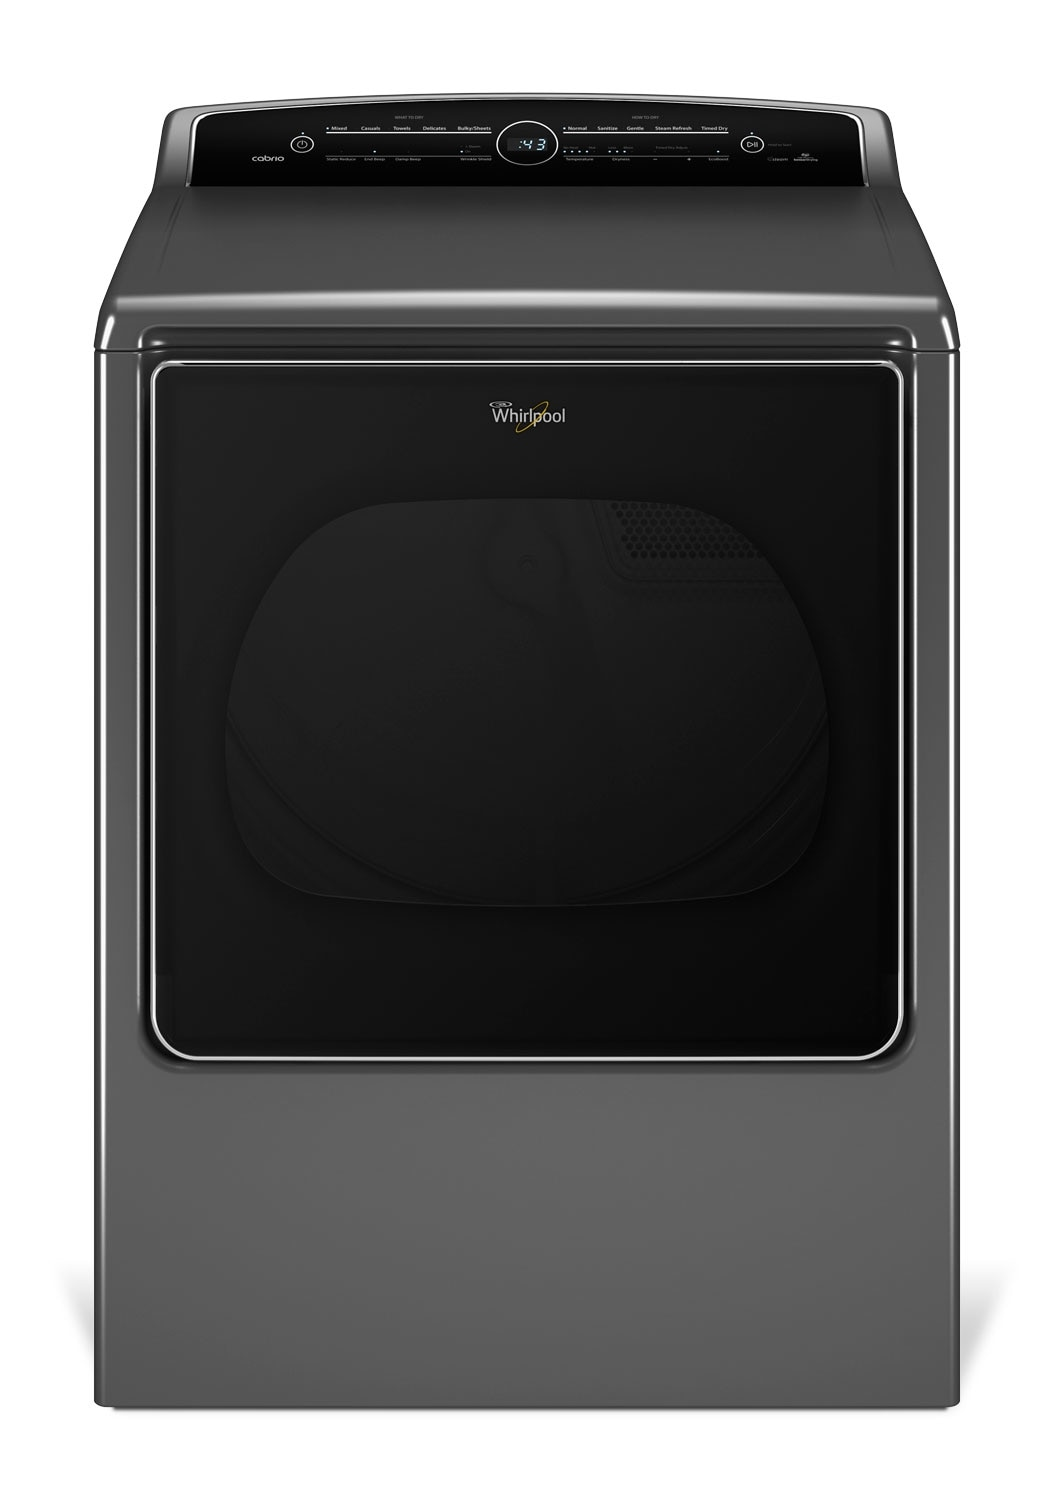 Washers and Dryers - Whirlpool Chrome Shadow Gas Dryer (8.8 Cu. Ft.) - WGD8500DC